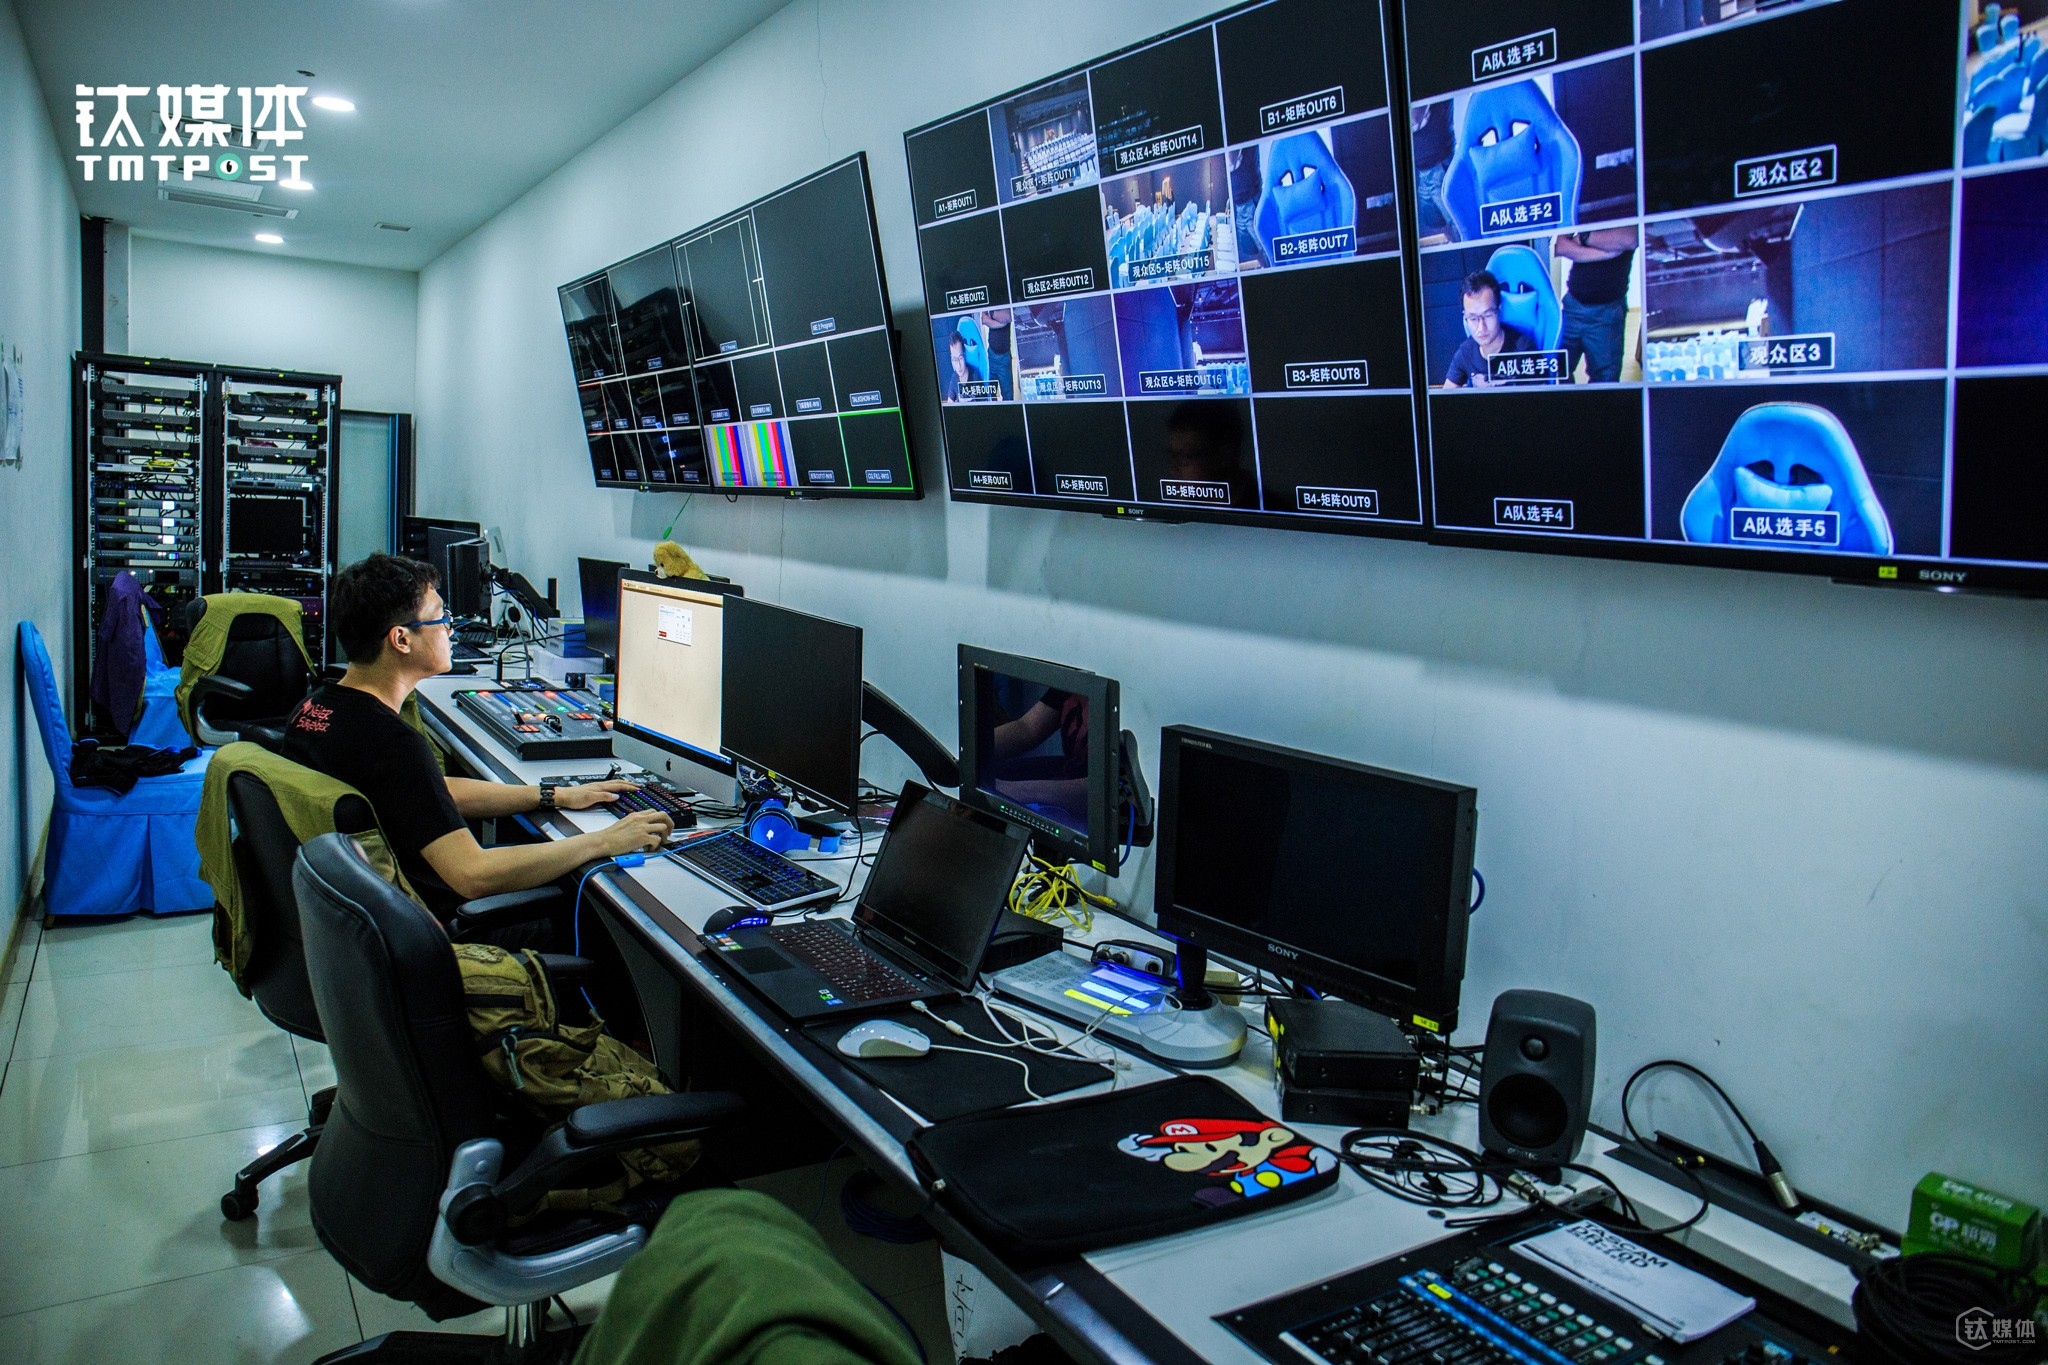 As live video broadcasting is burgeoning in China, WYWK soon hired a video team, five professionals, and live video broadcast e-sports on major live video broadcasting platforms. As time goes by, e-sports begin to have a decisive role in the internet café industry. The diversity in e-sports filed directly leads to the thorough upgrade of the internet café industry, which will ultimately lead to the diversity of internet café industry.